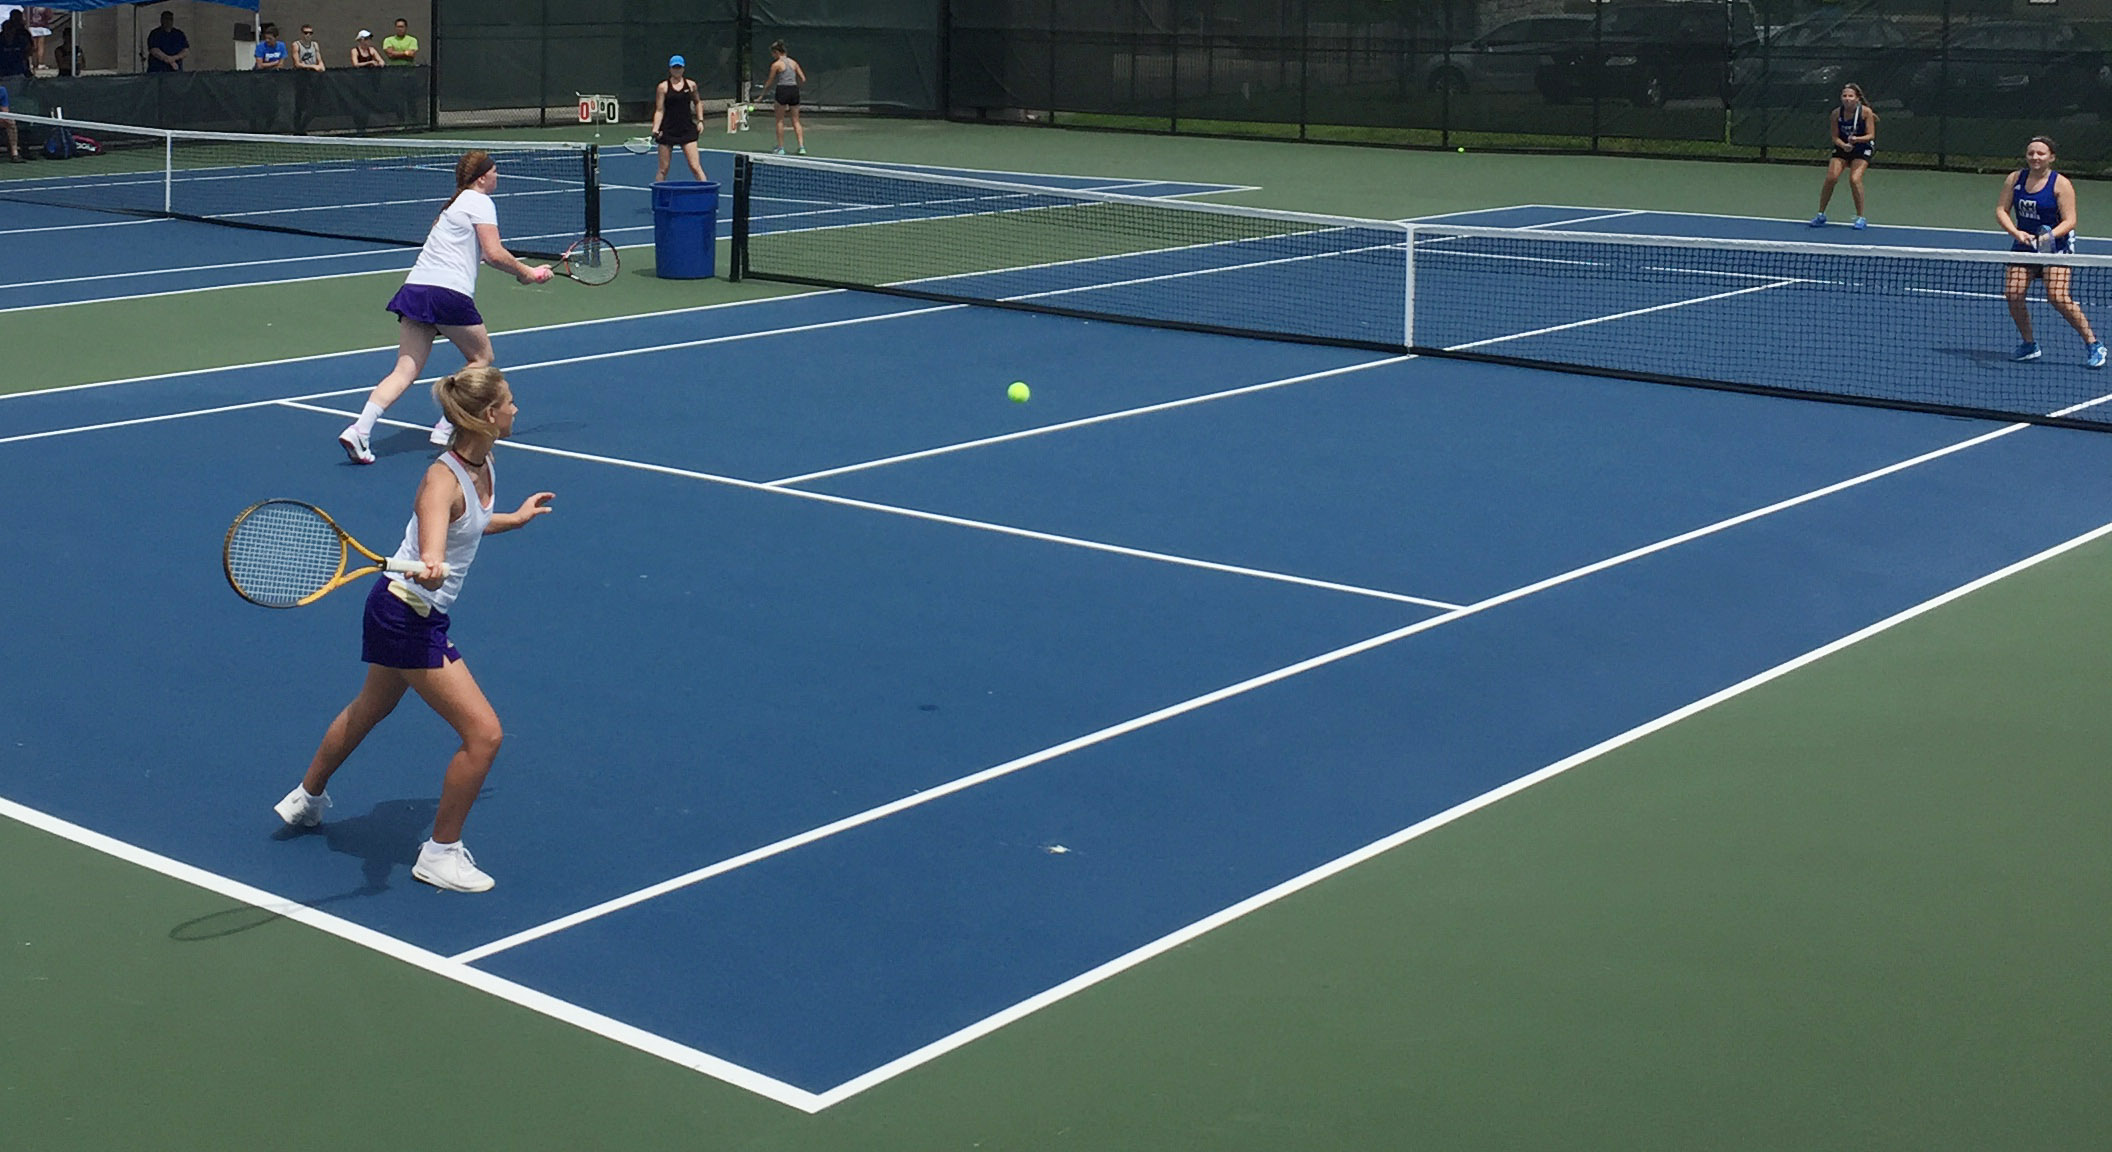 CHS senior Mallory Haley, at left, and freshman Victoria Cox play in the KHSAA state tennis tournament.